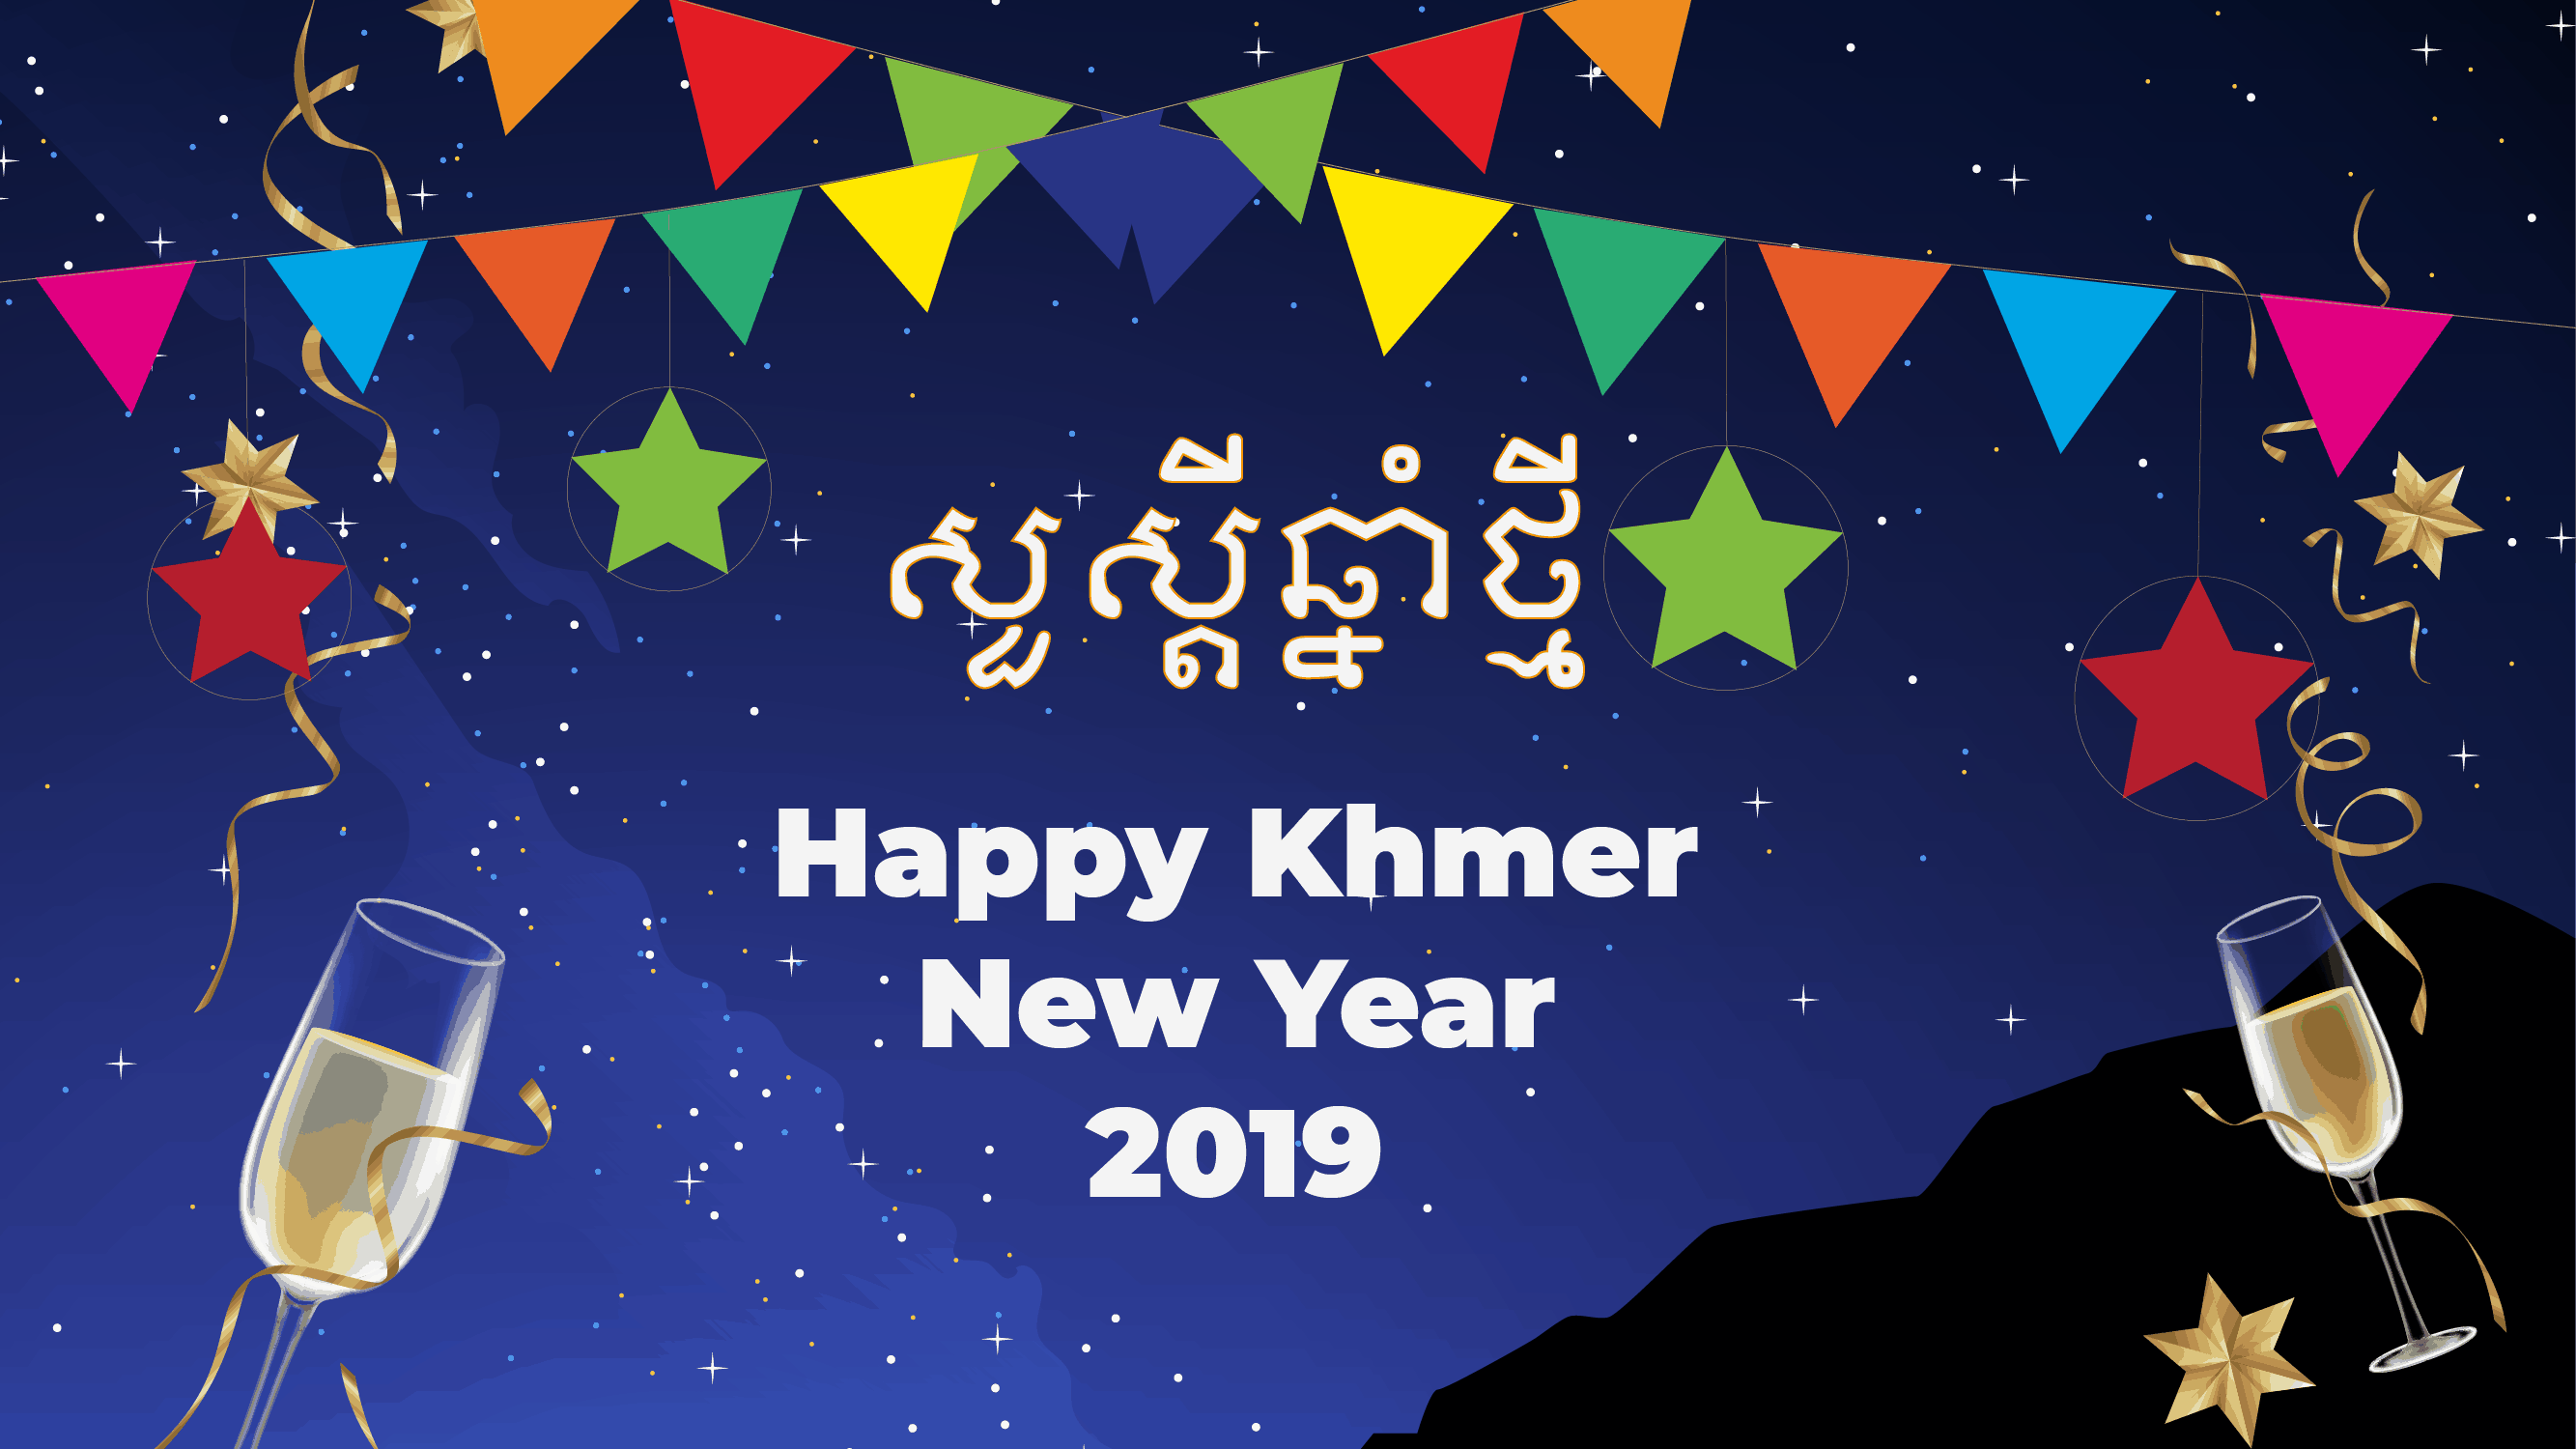 Celebrate khmer new year in siem reap @ abacus restaurant